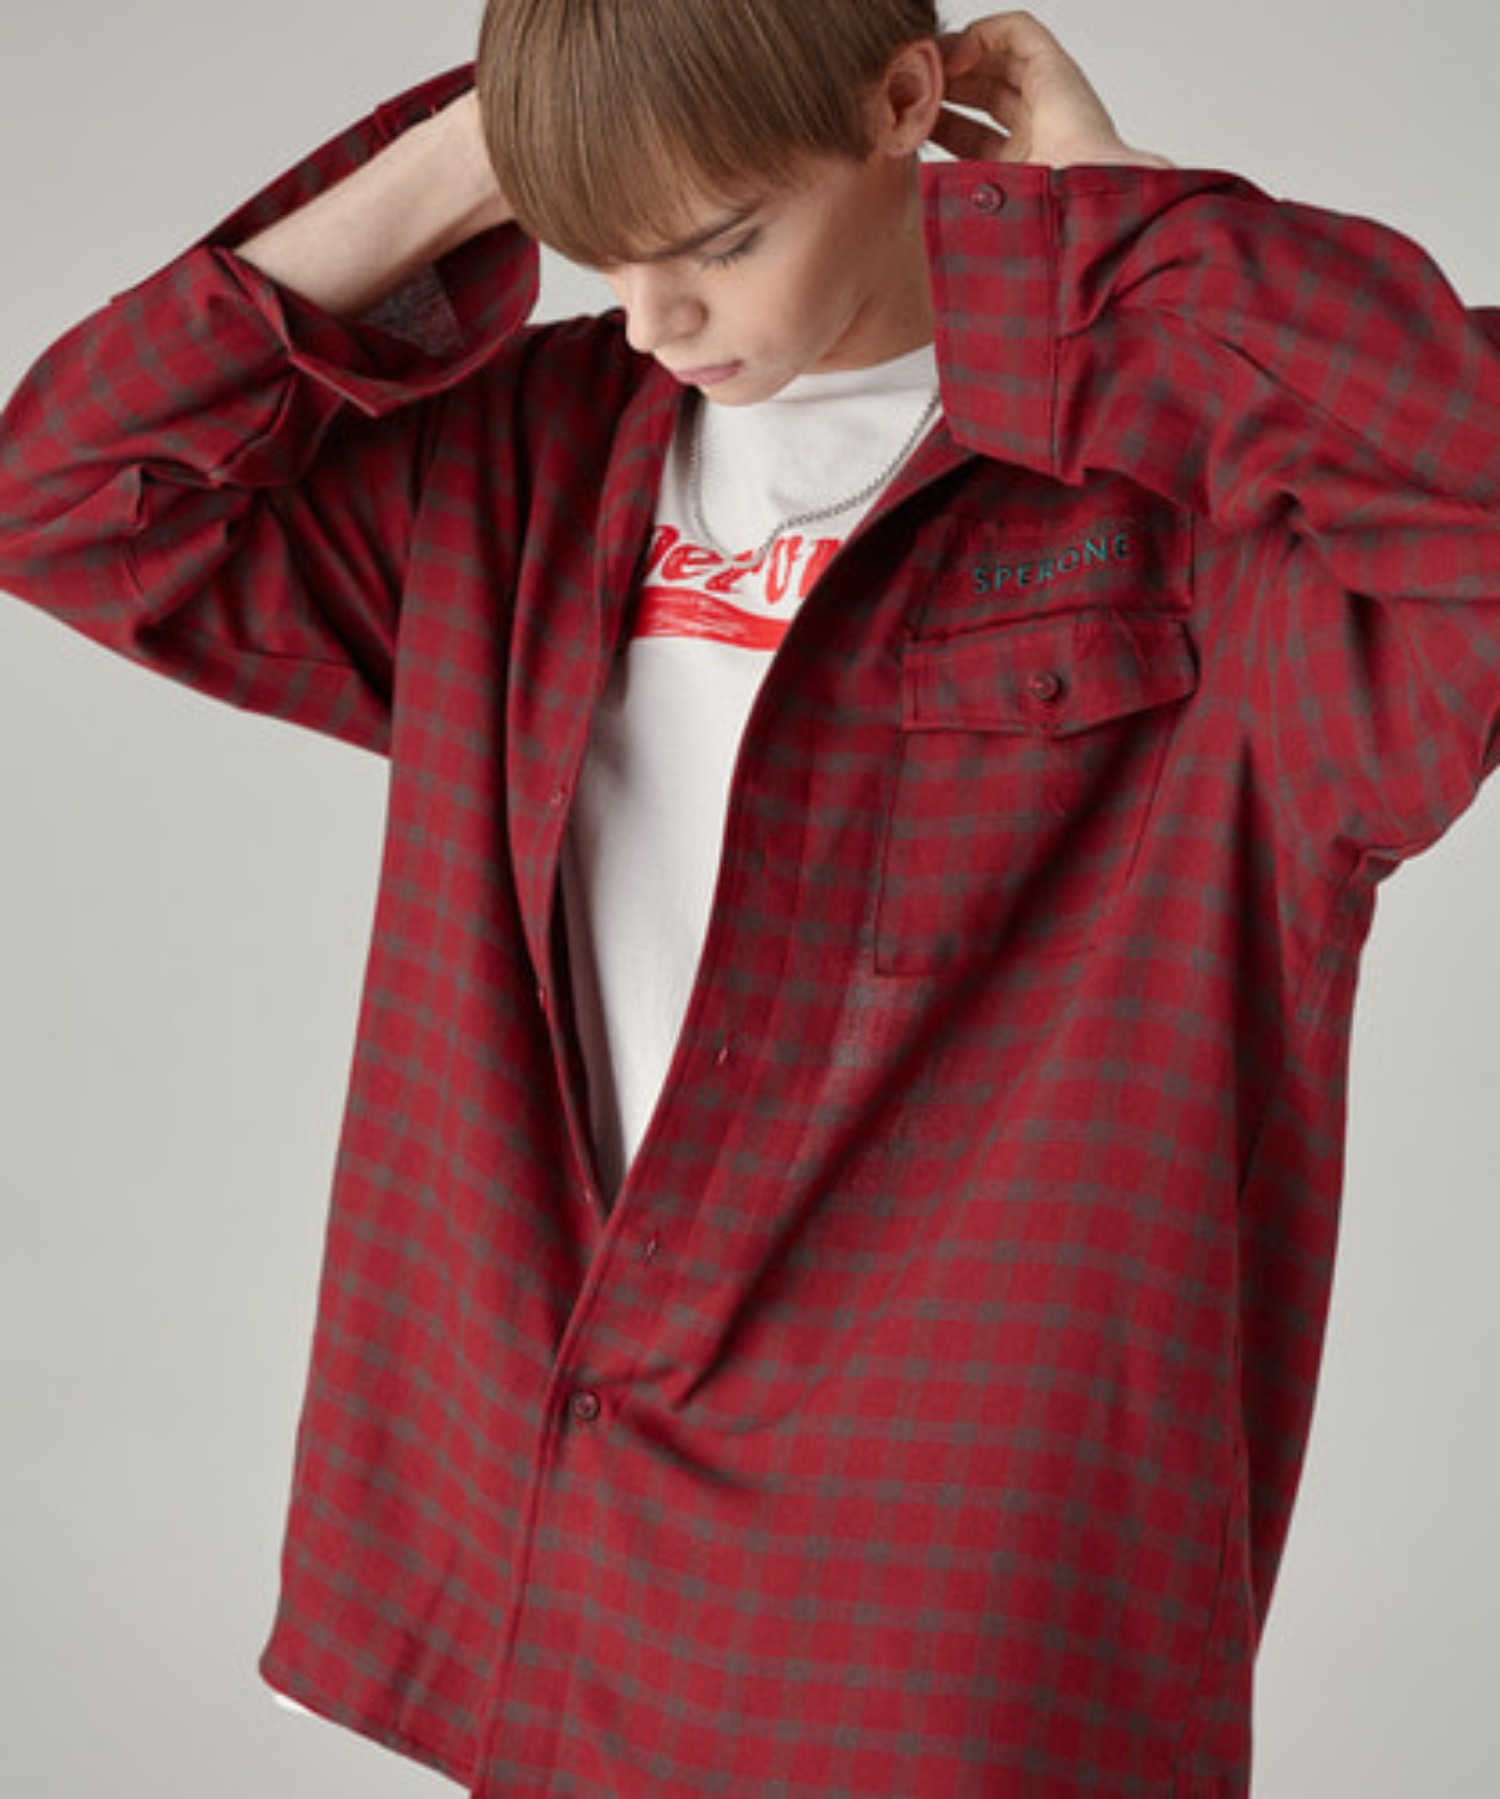 SPERONE UNISEX CHECK SHIRTS [RED]